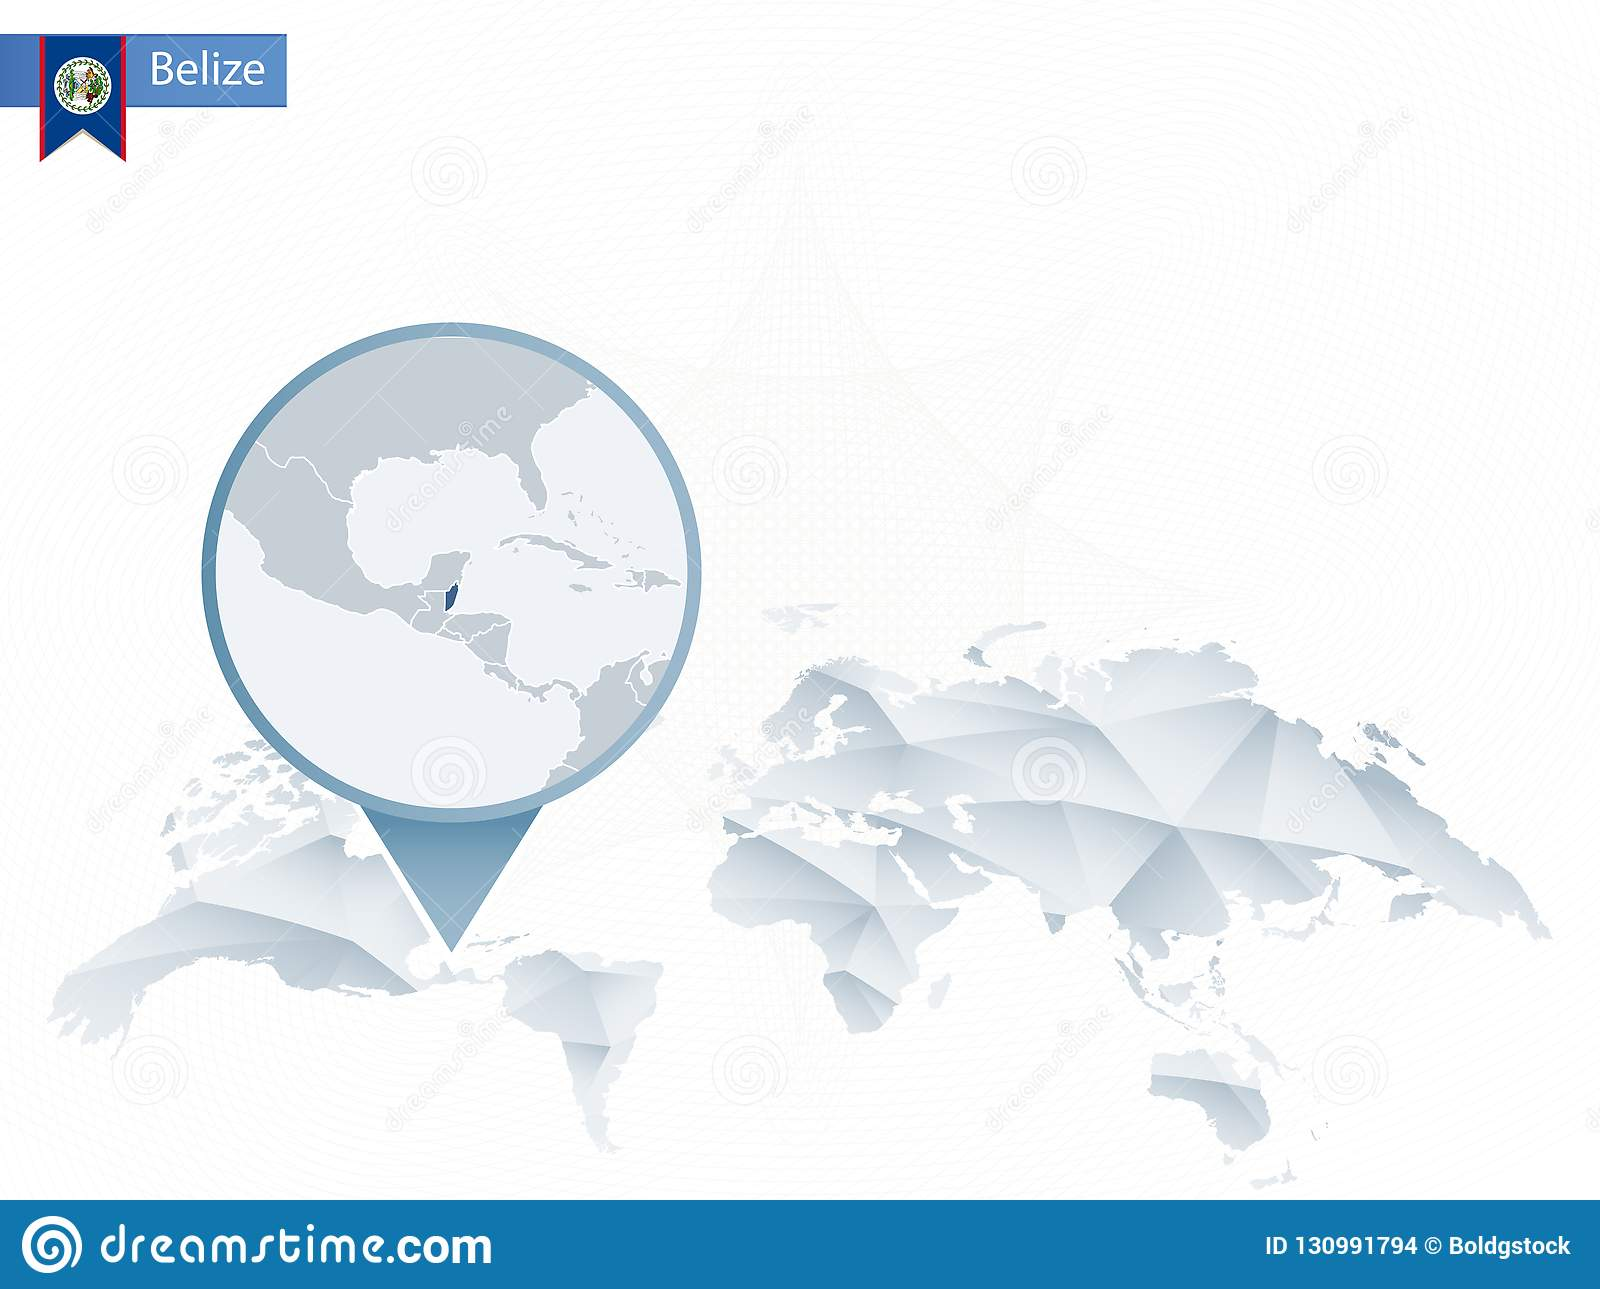 Abstract Rounded World Map With Pinned Detailed Belize Map Stock